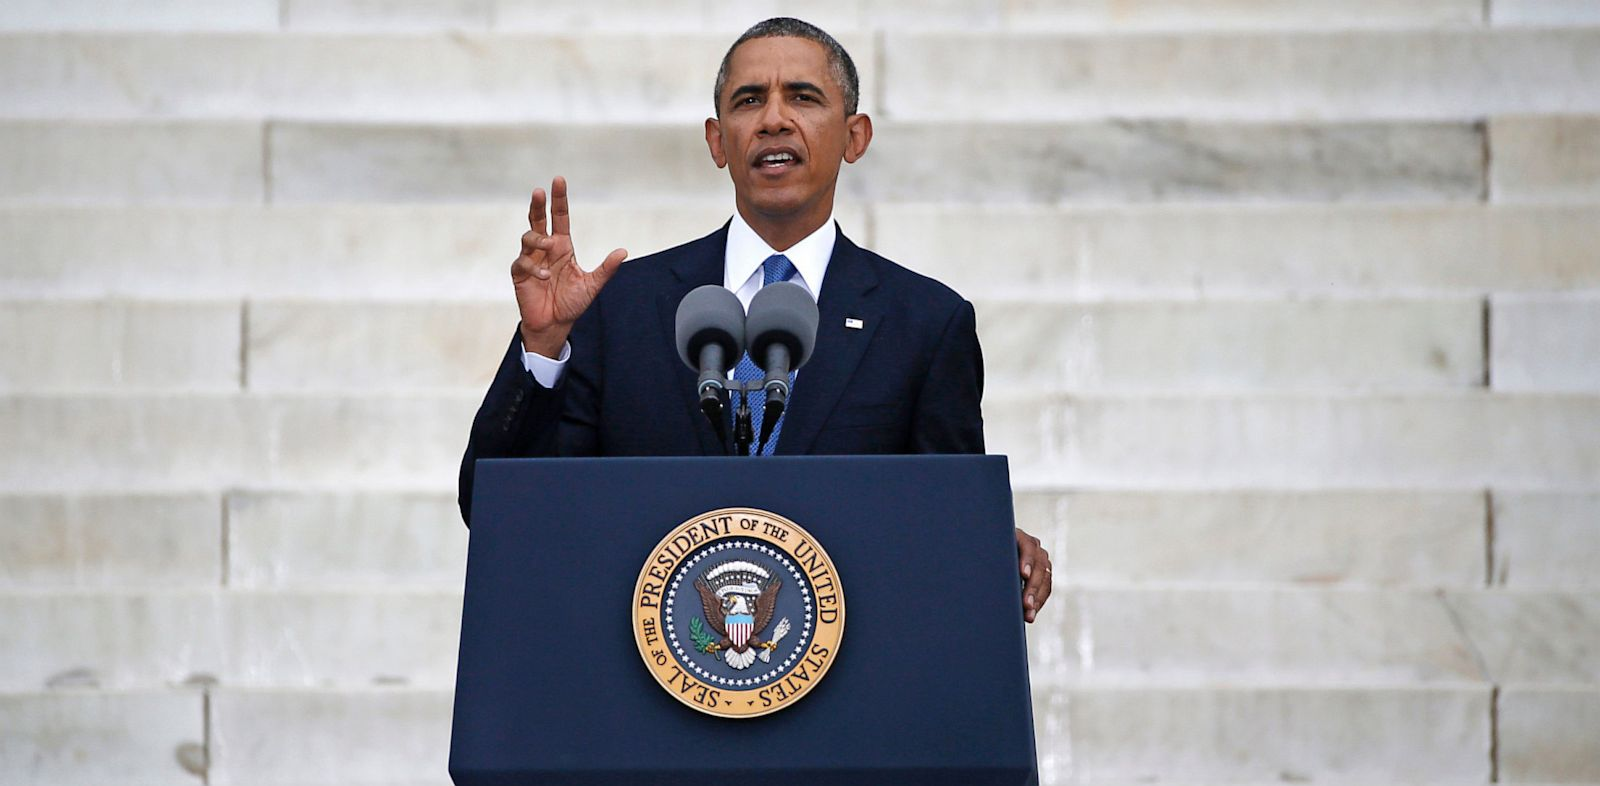 PHOTO: President Obama speaking at Lincoln Memorial